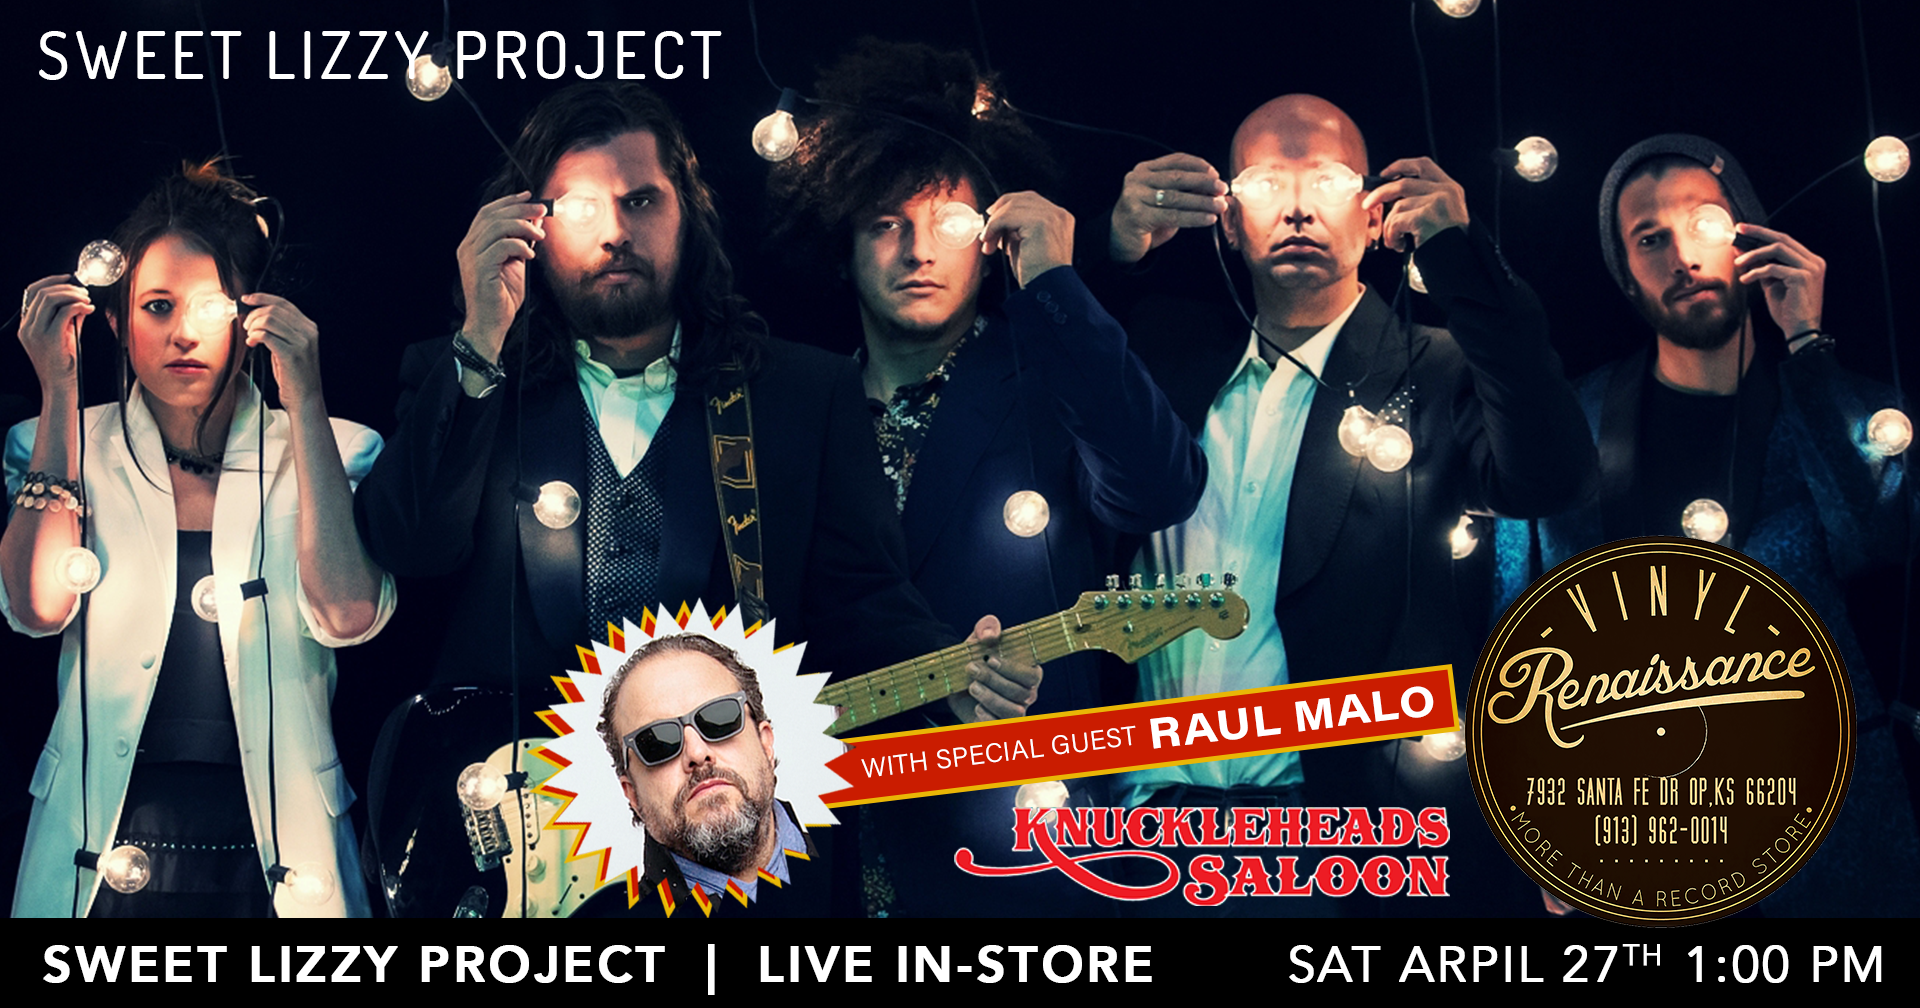 Sweet Lizzy Project with special guest Raul Malo (The Mavericks) + Live In-Store